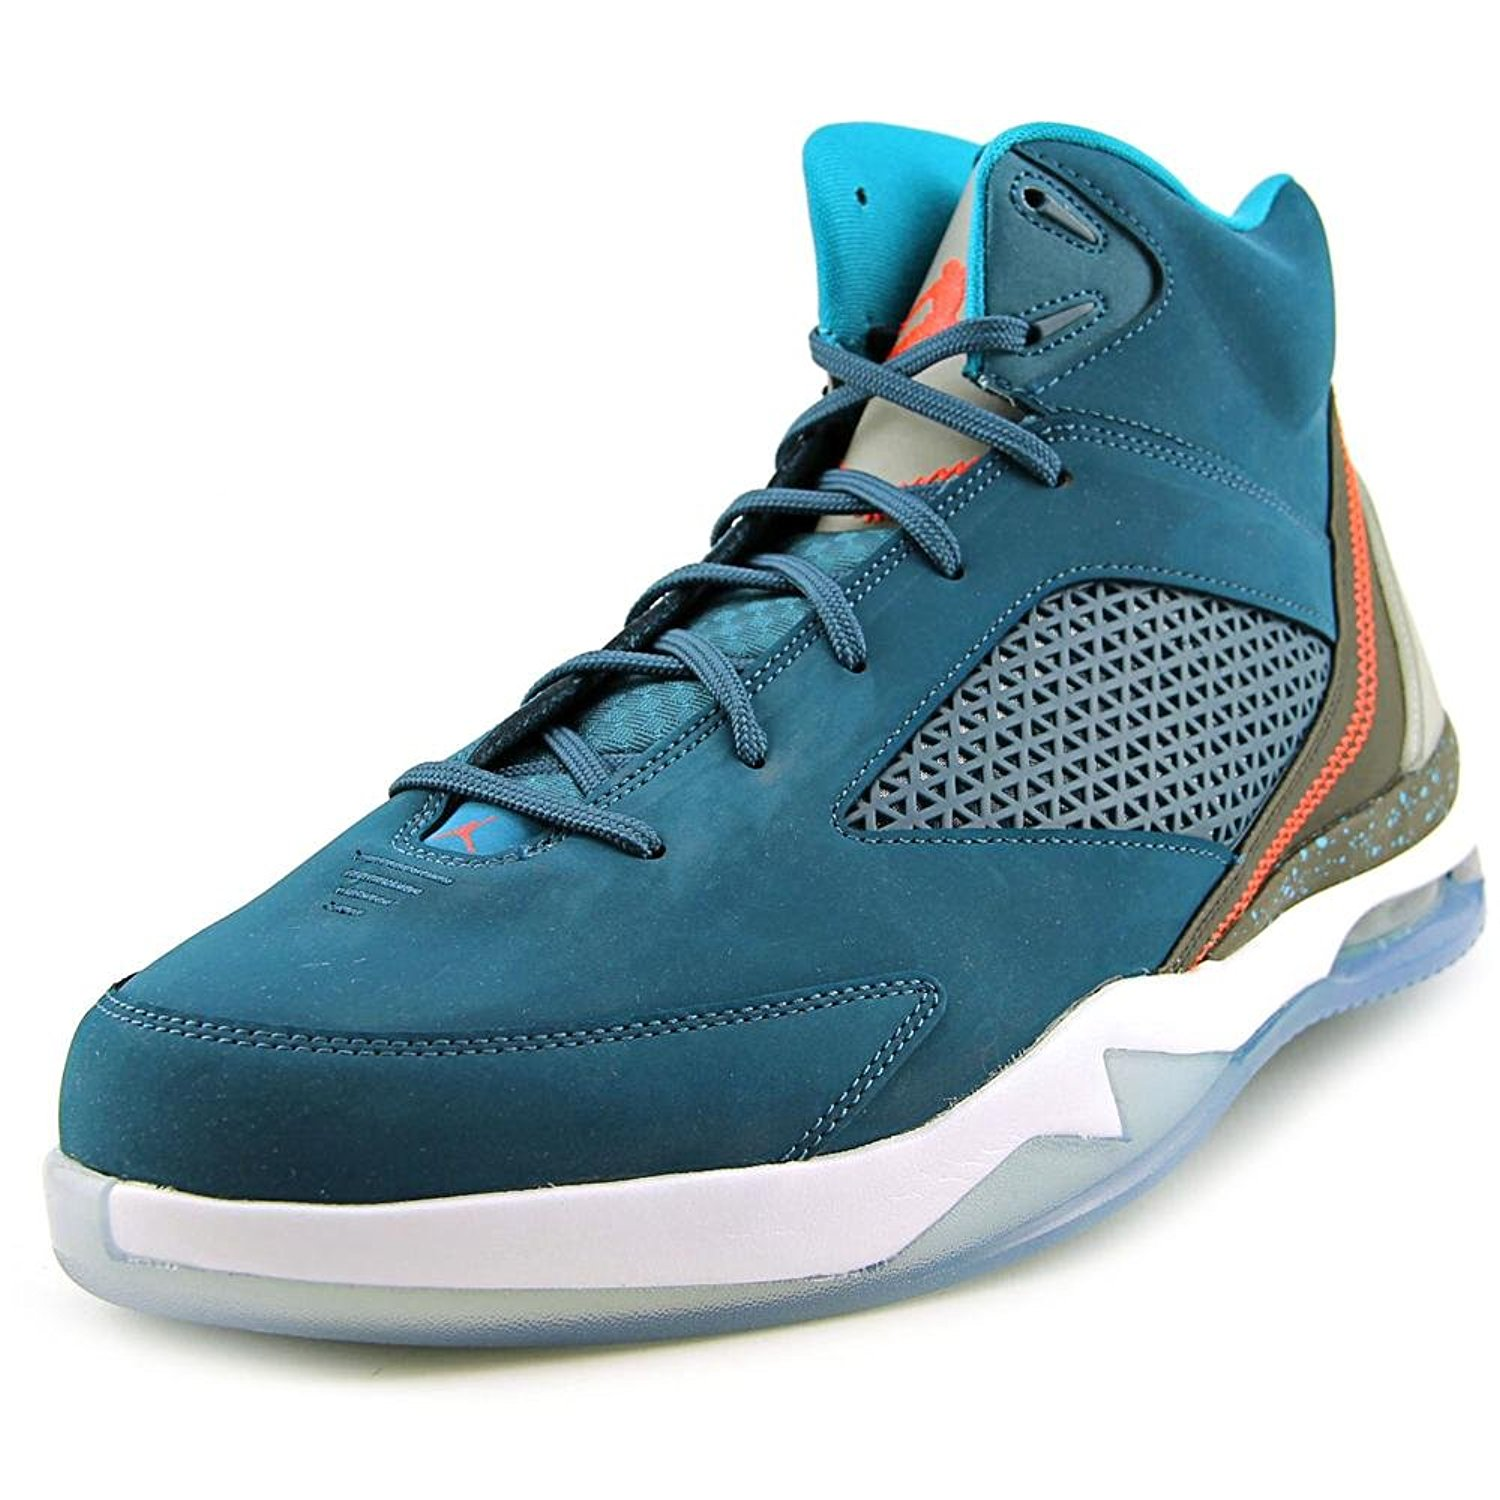 6ca0b91e3ebb4c Get Quotations · Nike Mens Jordan Flight Remix Space Blue Infrared23-Tropical  Teal Leather Size 9.5